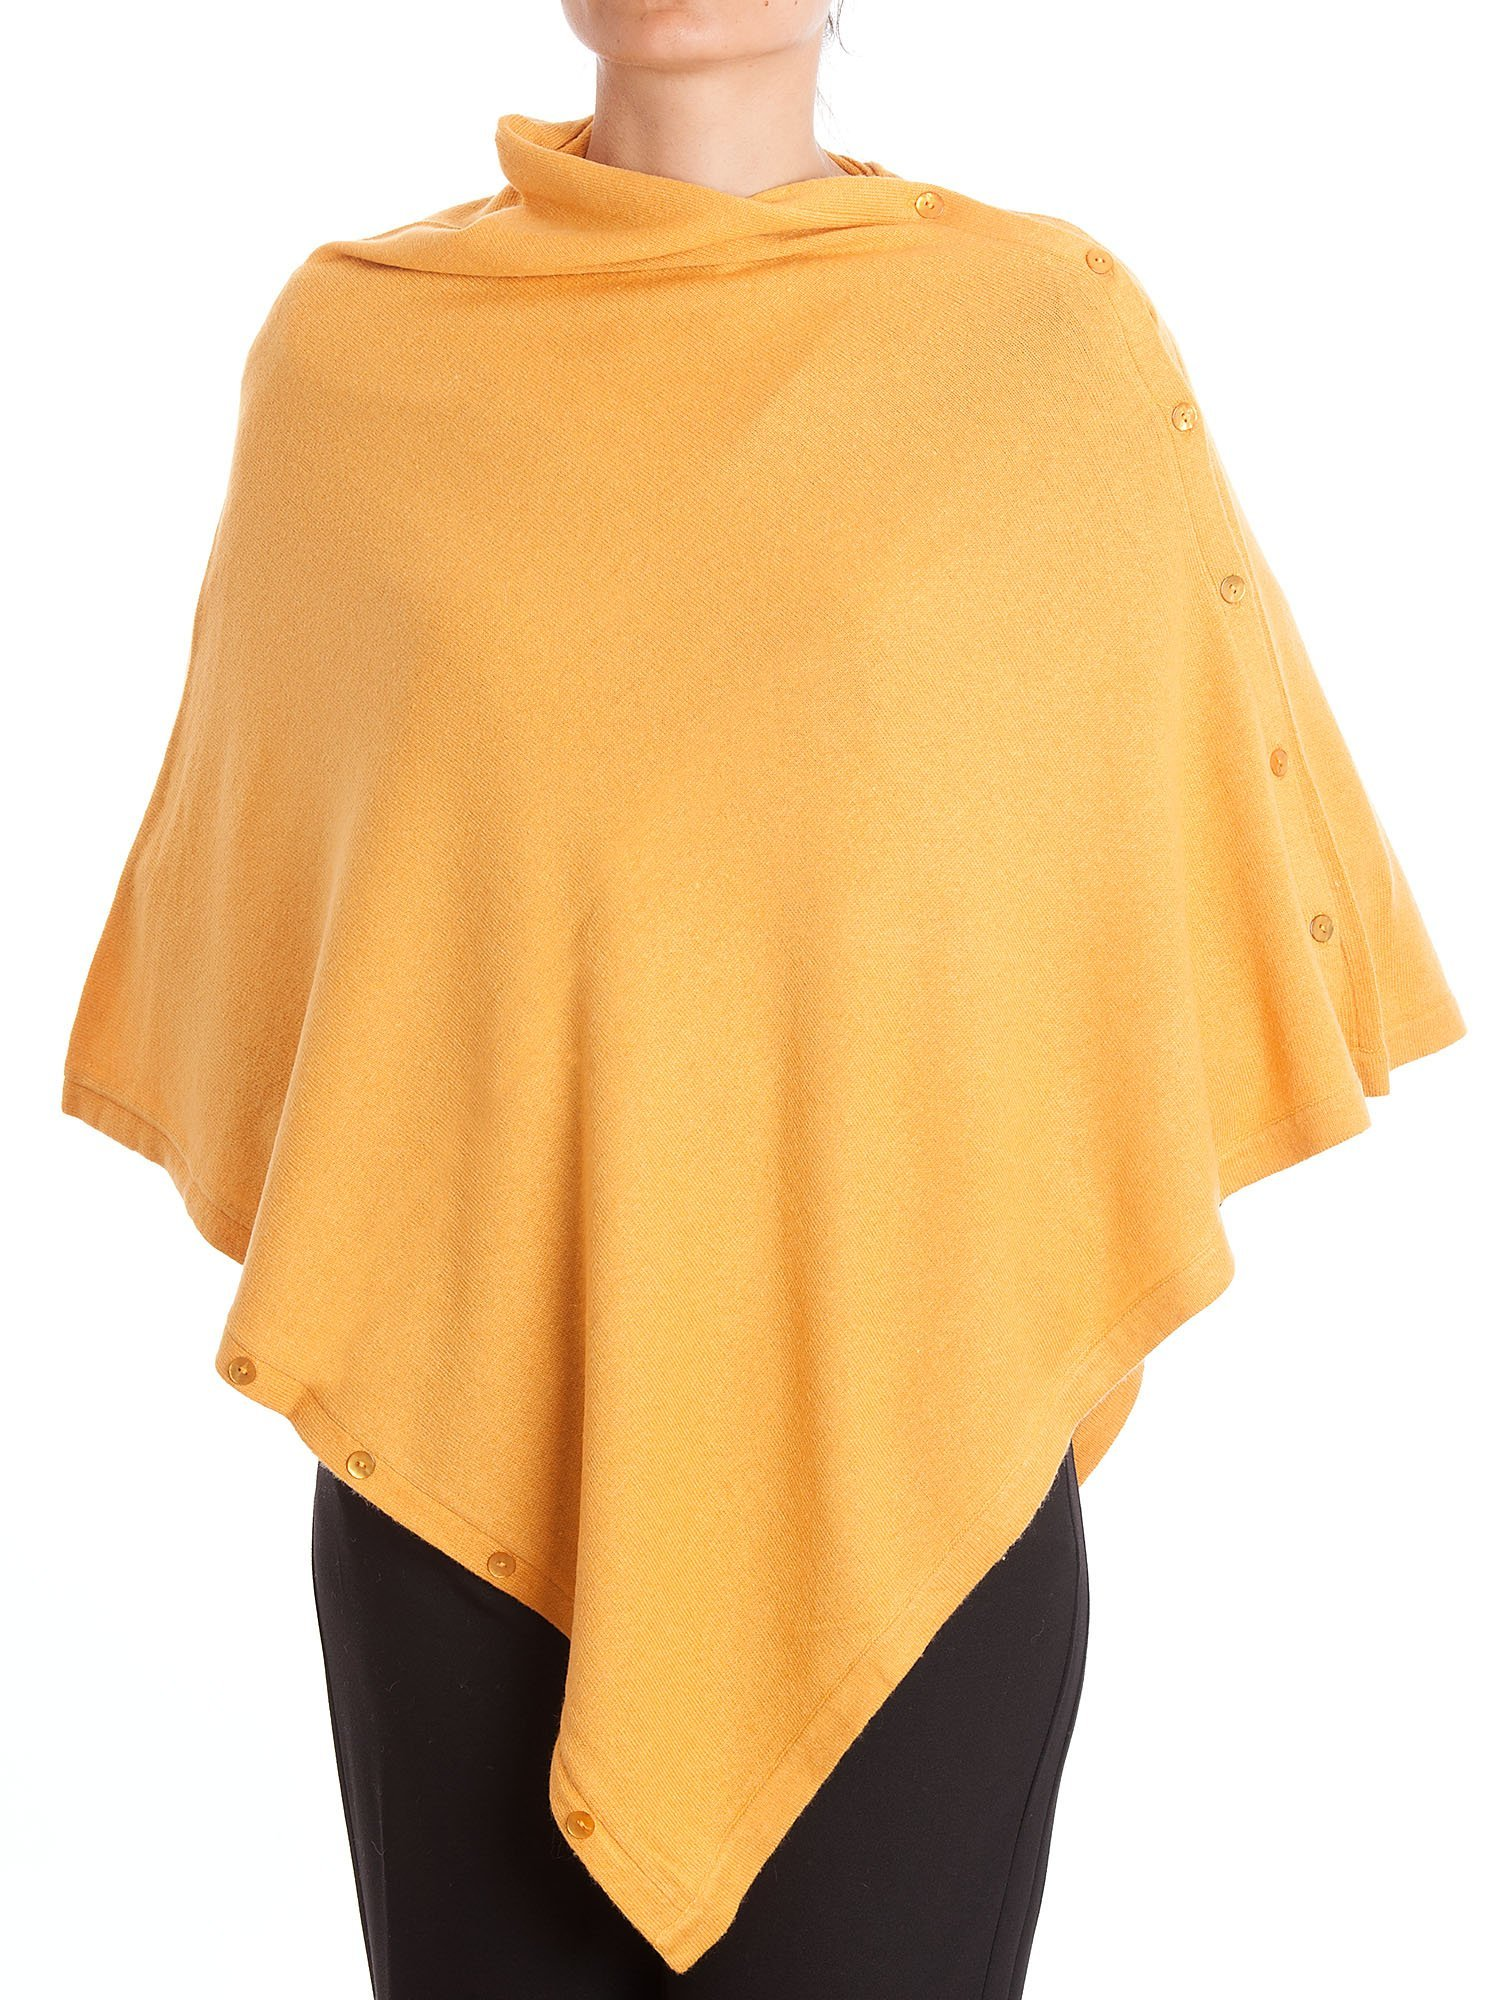 DALLE PIANE CASHMERE - Poncho with Buttons Cashmere Blended Yarns - Made in Italy, Color: Yellow, One Size